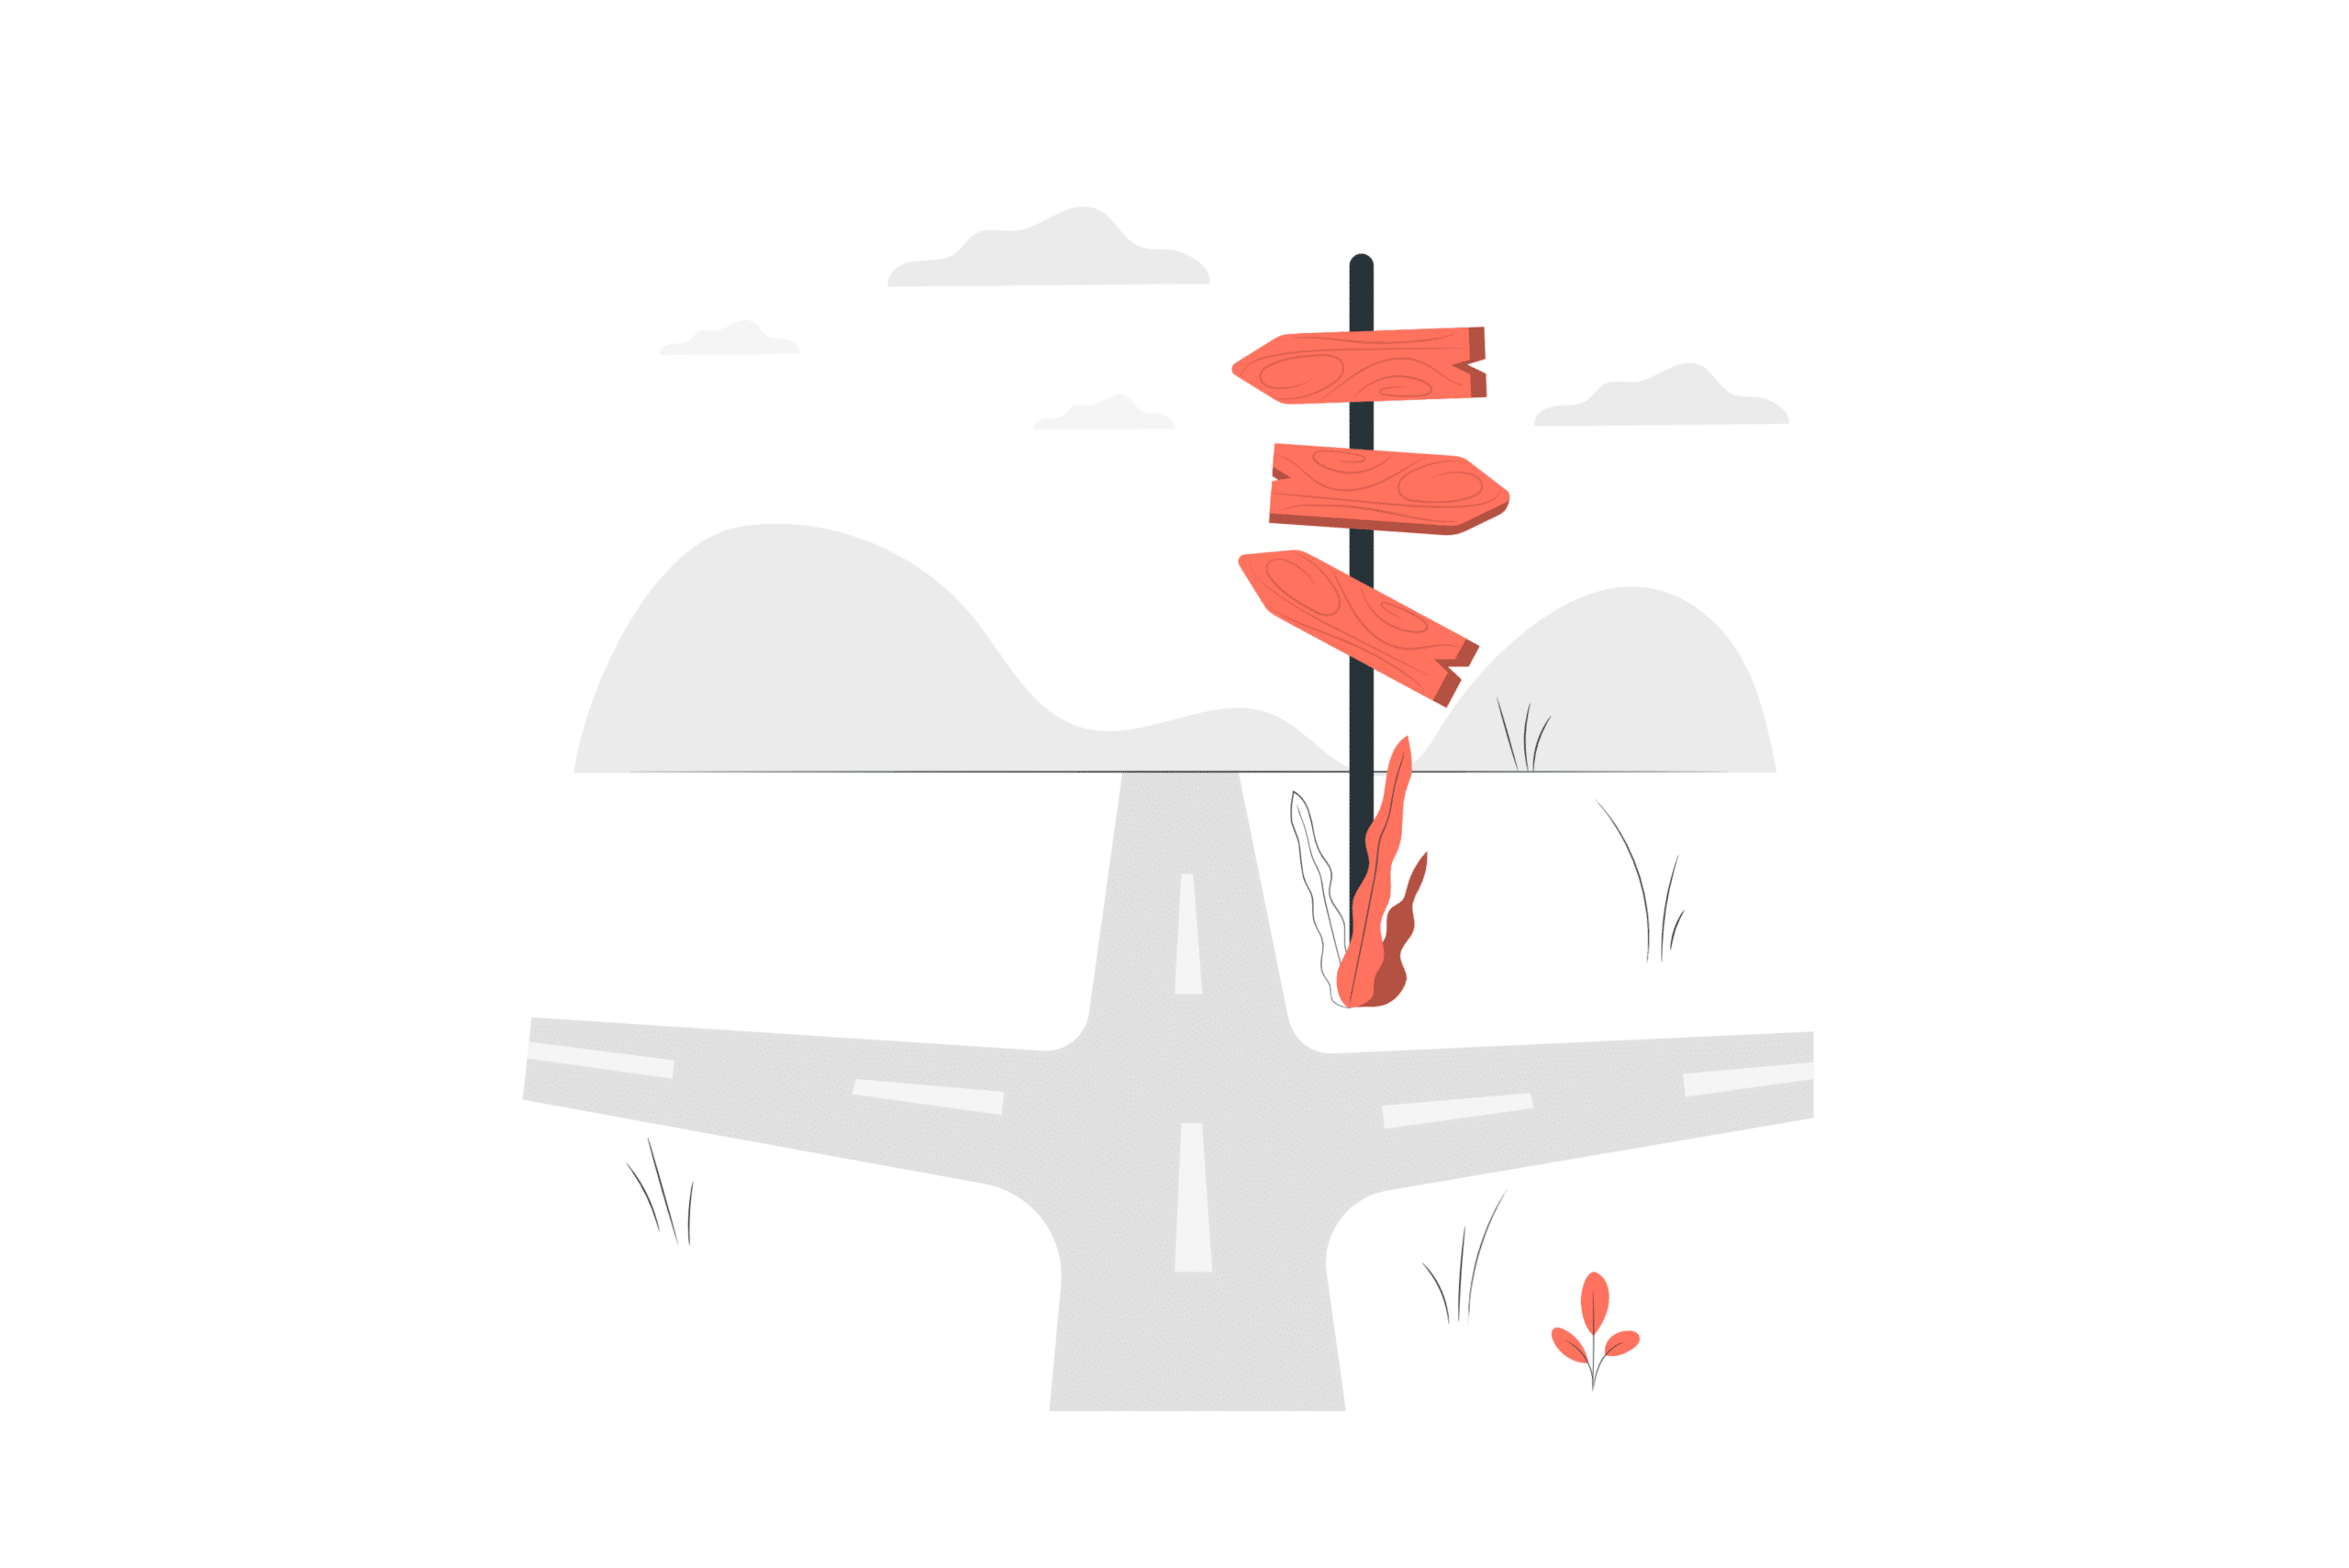 Illustration about multiple ways to go